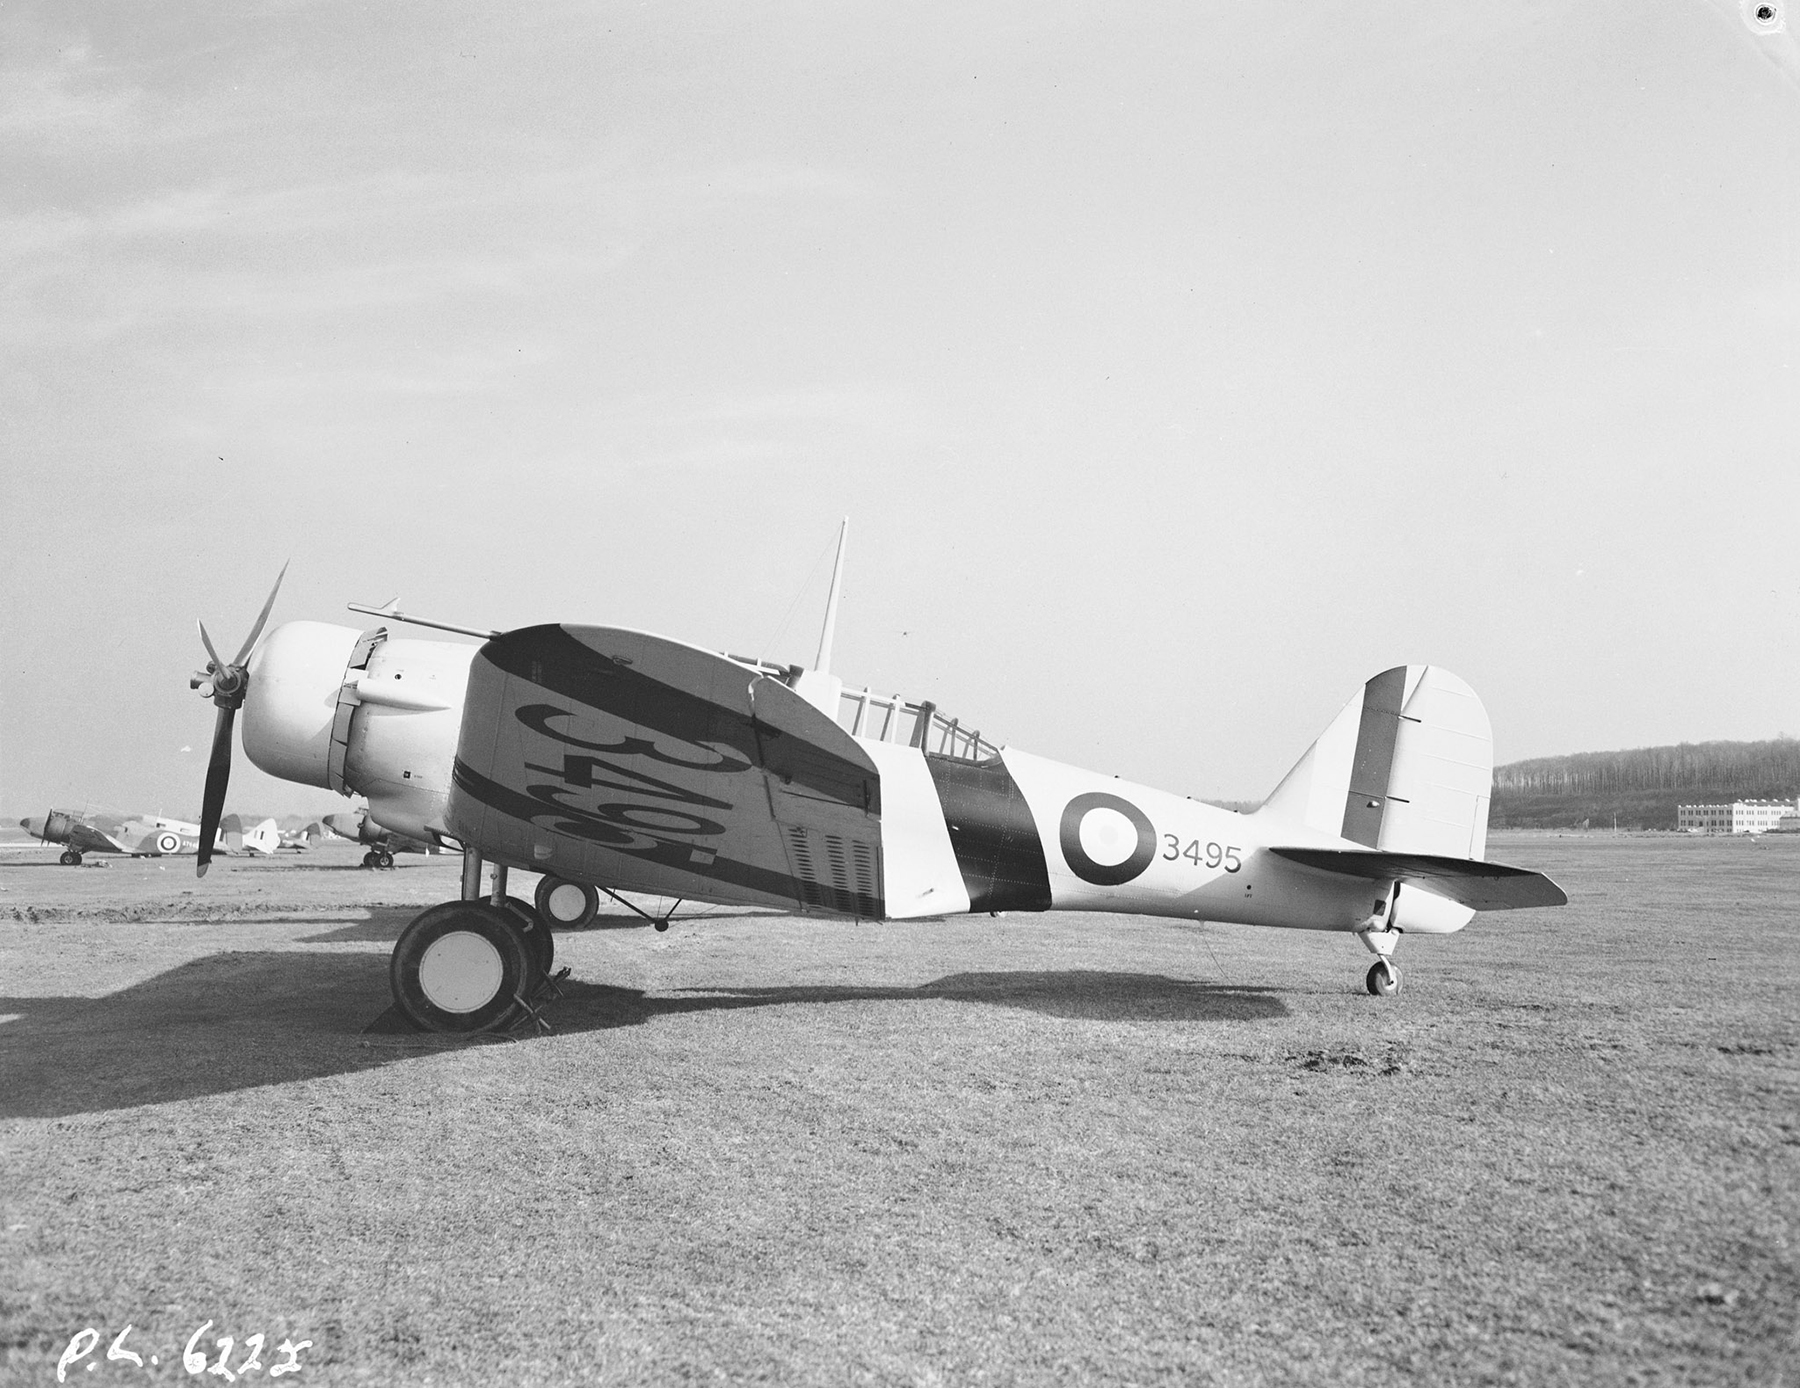 A port-side view of Northrop Nomad aircraft No. 3508, taken November 20, 1941. PHOTO: PL-6225, DND Archives